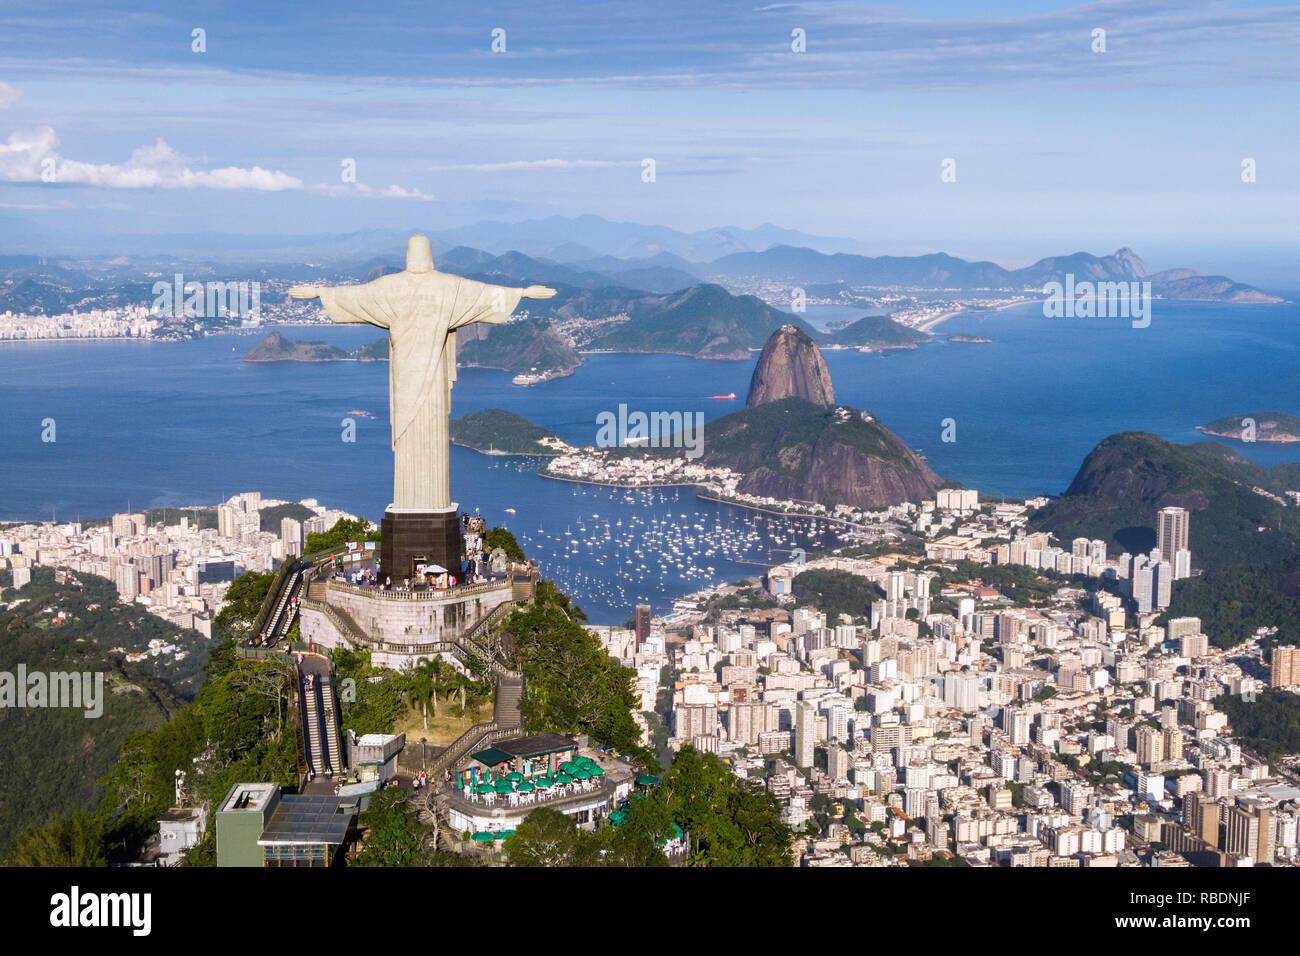 Rio de Janeiro, Brazil, aerial view of Christ the Redeemer and Sugarloaf Mountain. Stock Photo